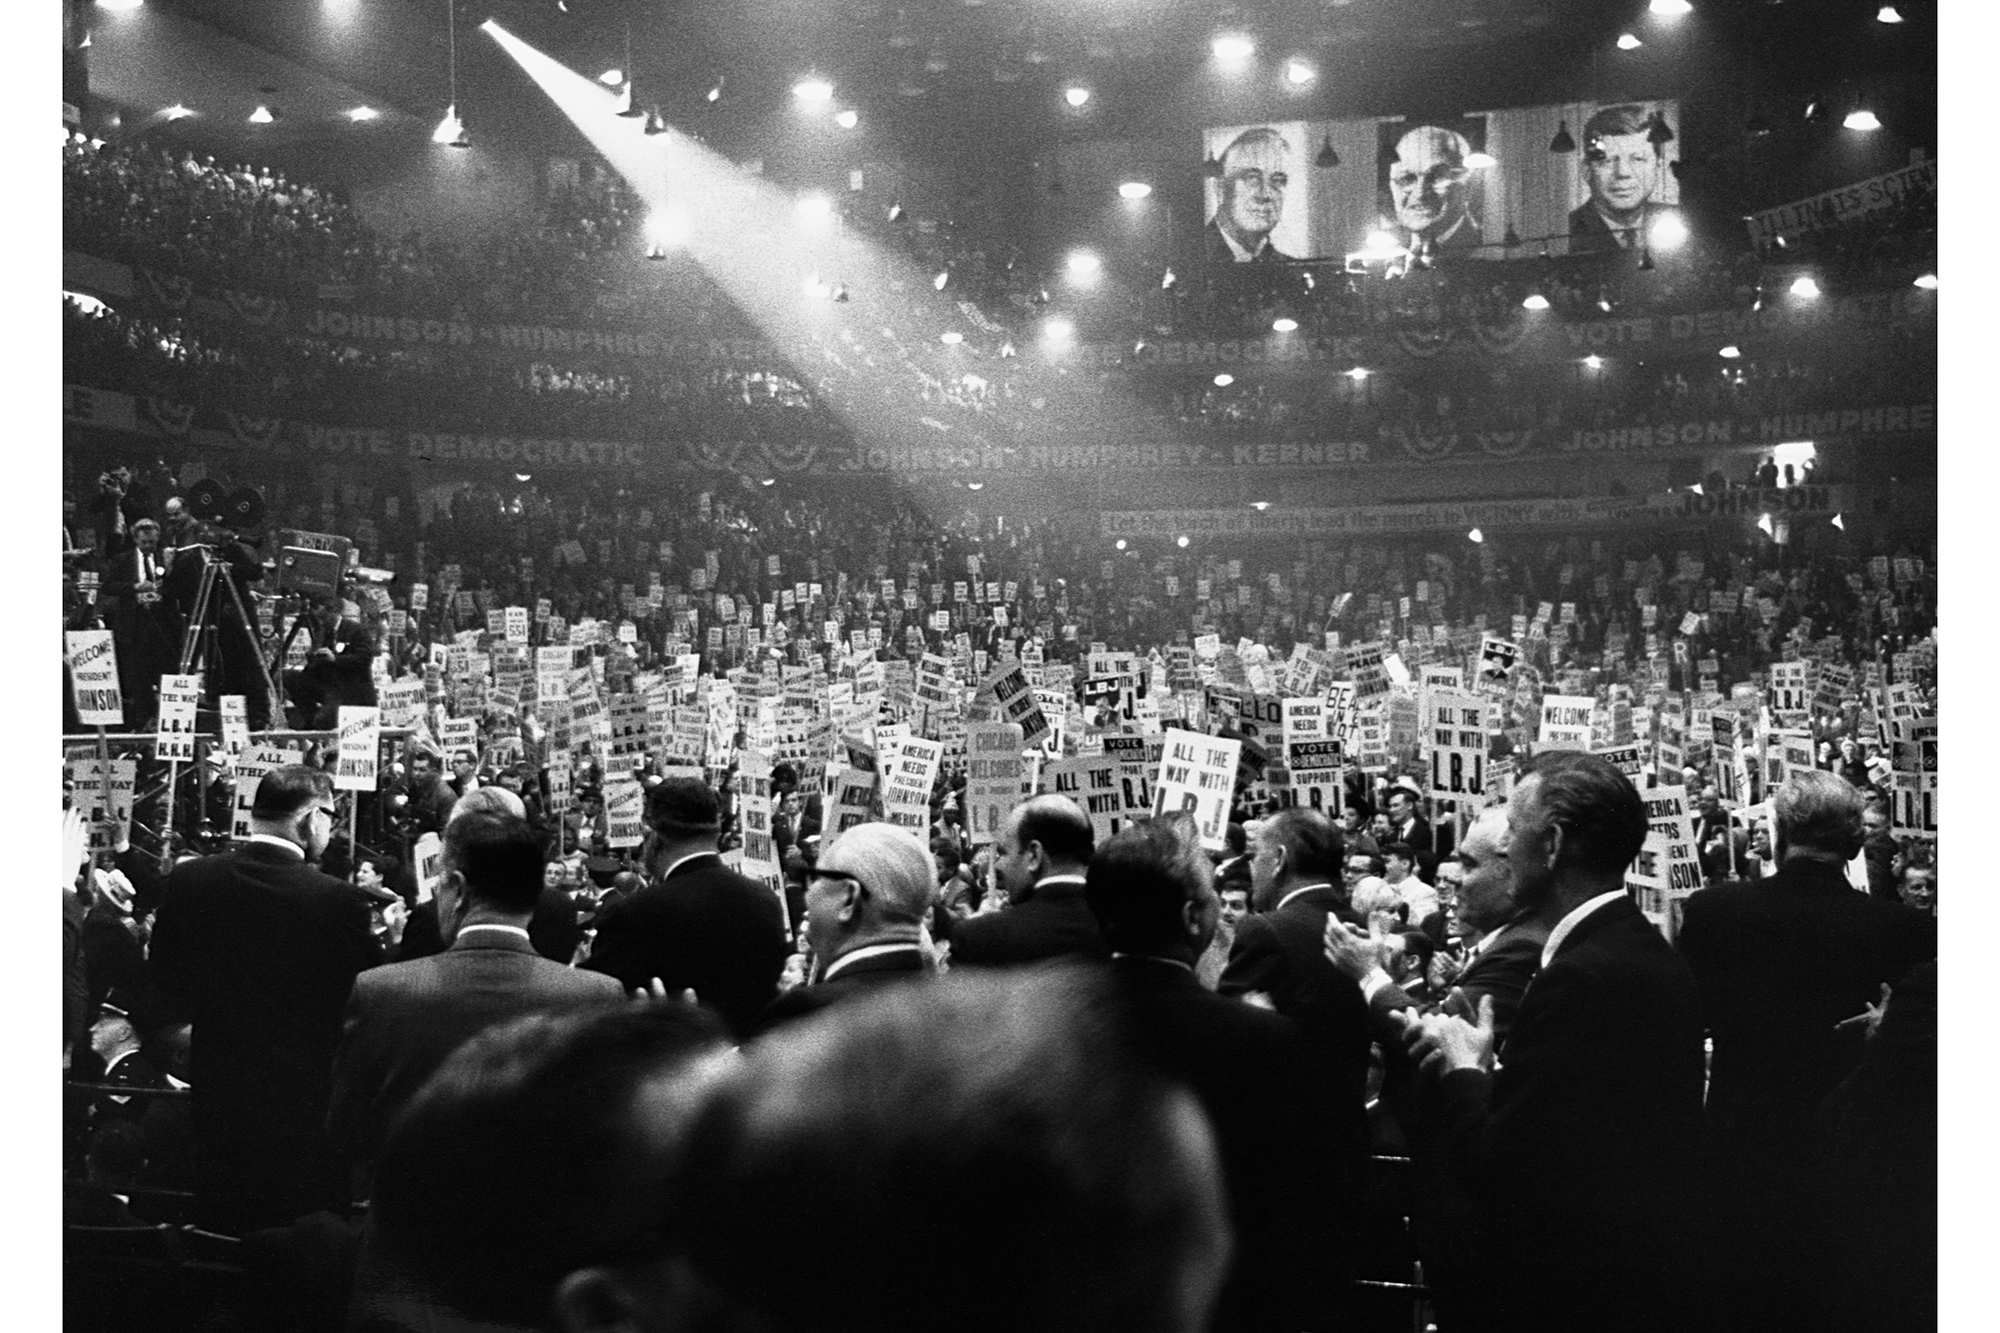 A crowd of delegates hold signs supporting Lyndon B. Johnson for president at the 1964 Democratic National Convention in Atlantic City, New Jersey. | <span>Corbis/Getty</span>